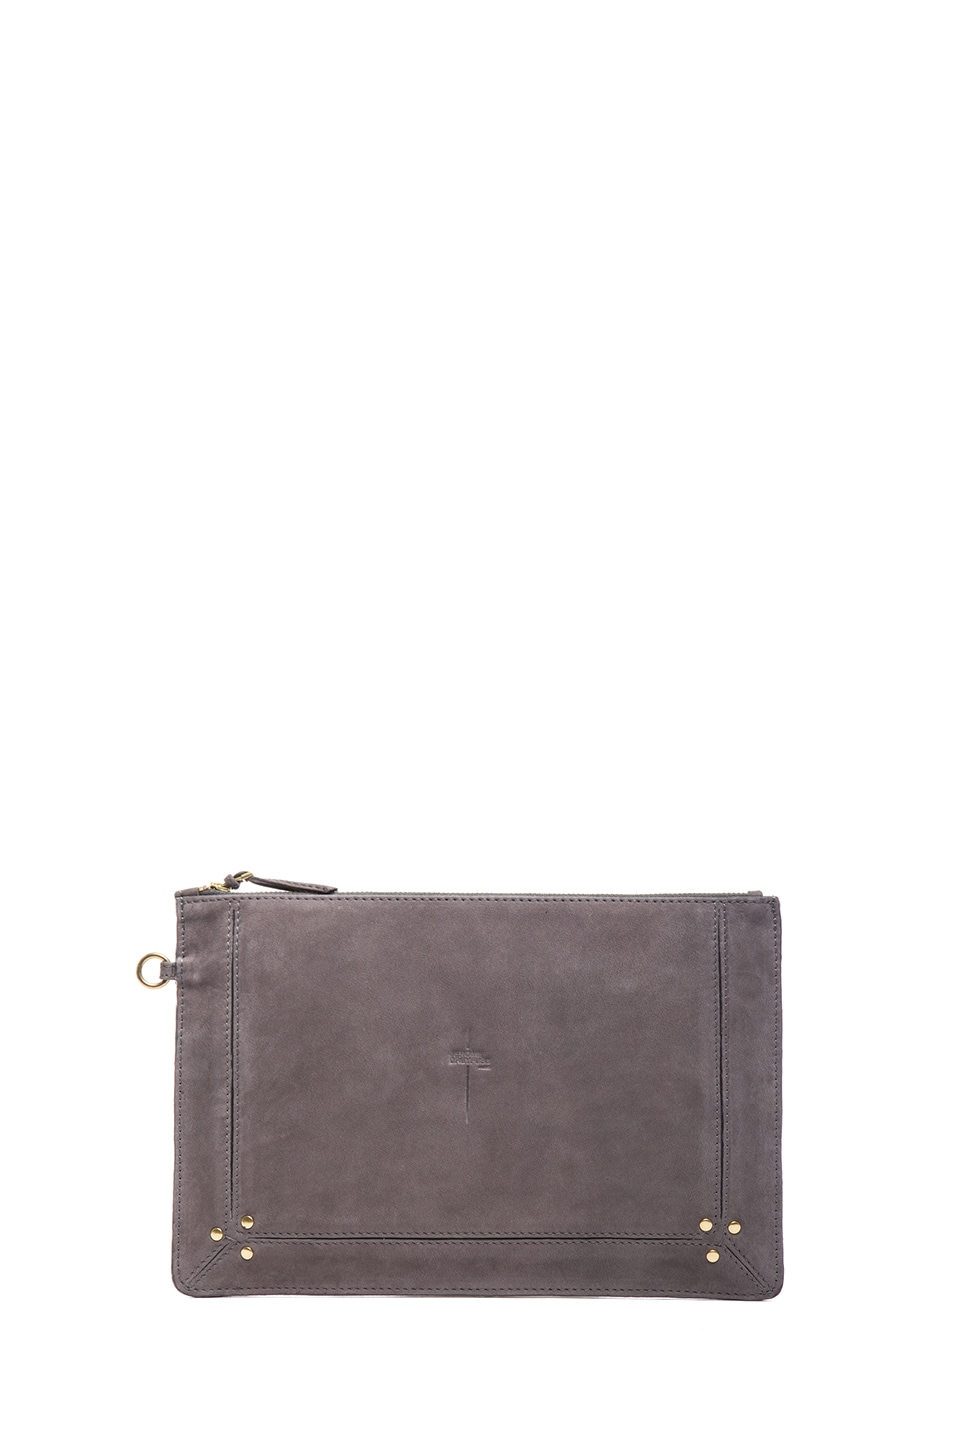 Image 1 of Jerome Dreyfuss Large Popoche Clutch in Stone